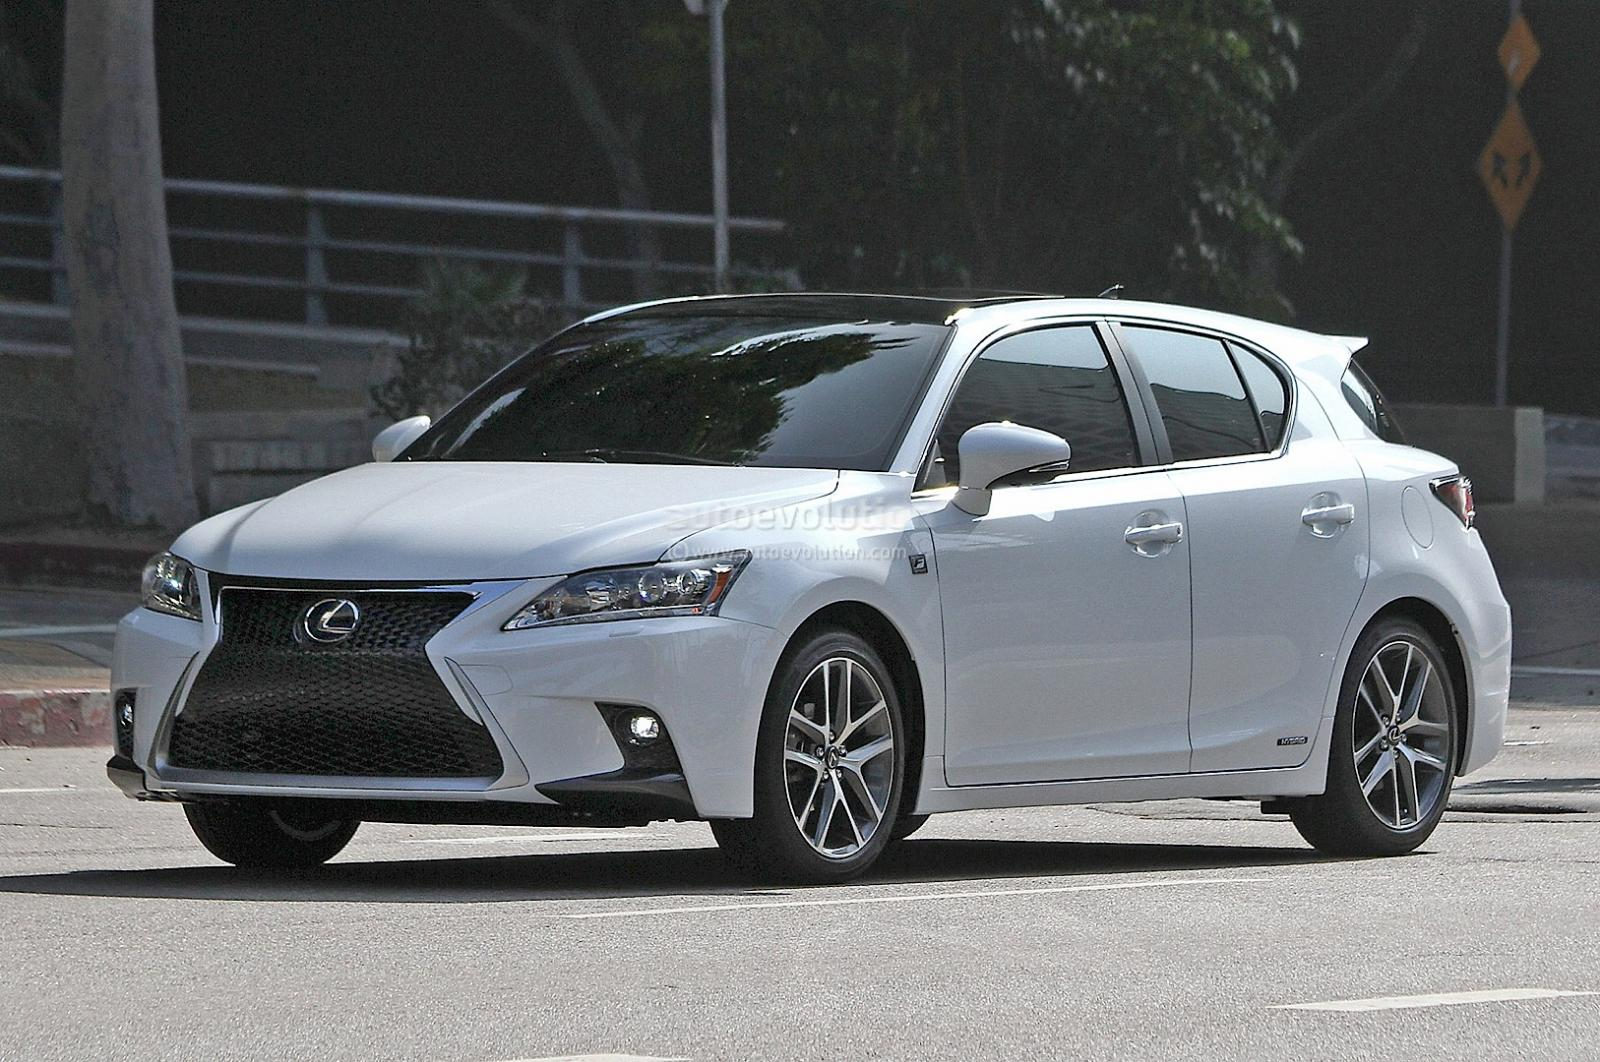 hatchback richmond image lexus ct in pre inventory fwd owned